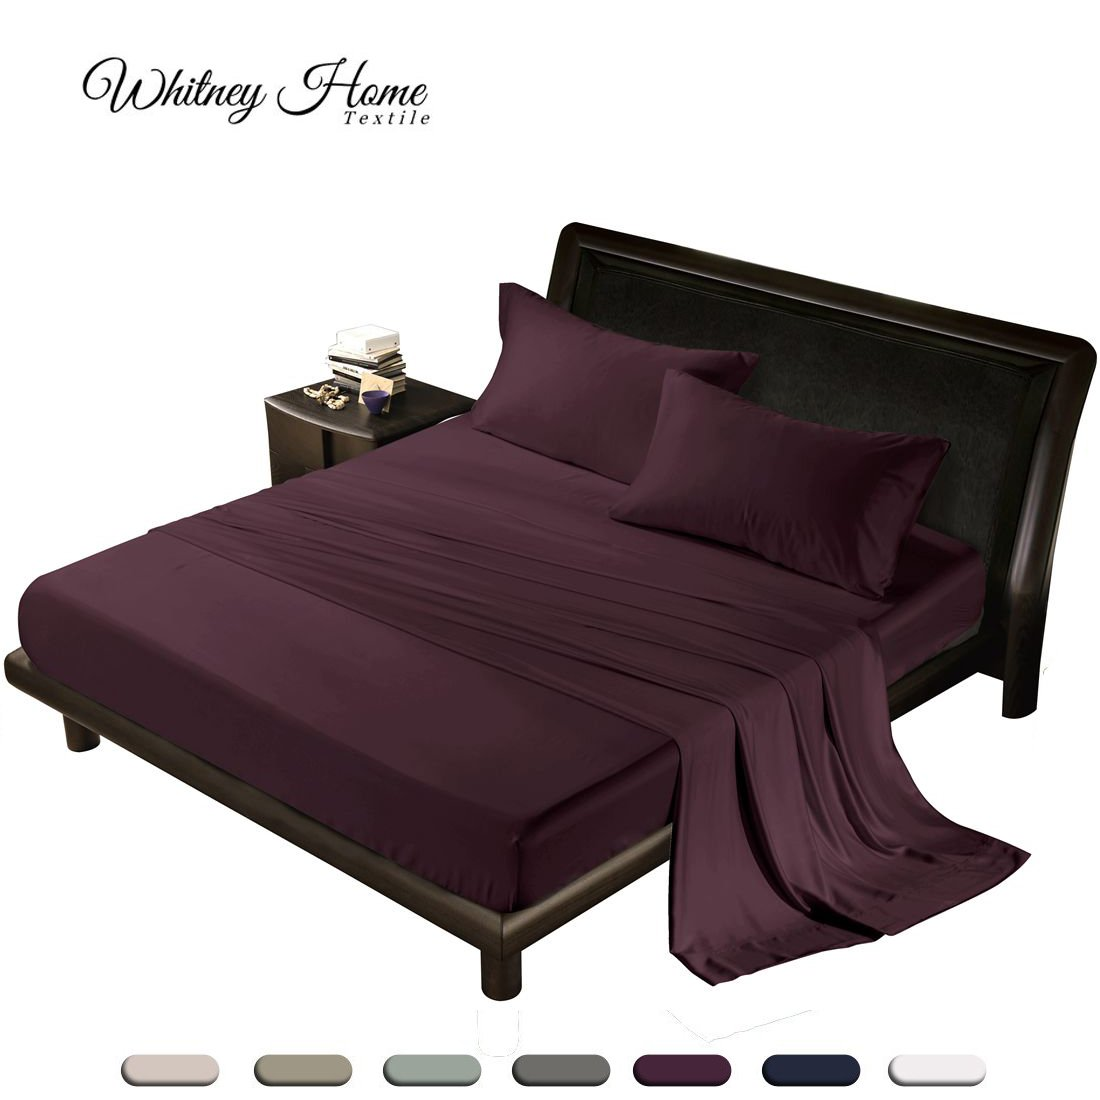 Natural Quality 100% Tencel from Eucalyptus Wood Pulp Bed Sheet 4-Piece Set - Eco-friendly, Refreshing & Silky Soft Fiber, Hypoallergenic, Mist & Odors Resistant Bedding, Burgundy King